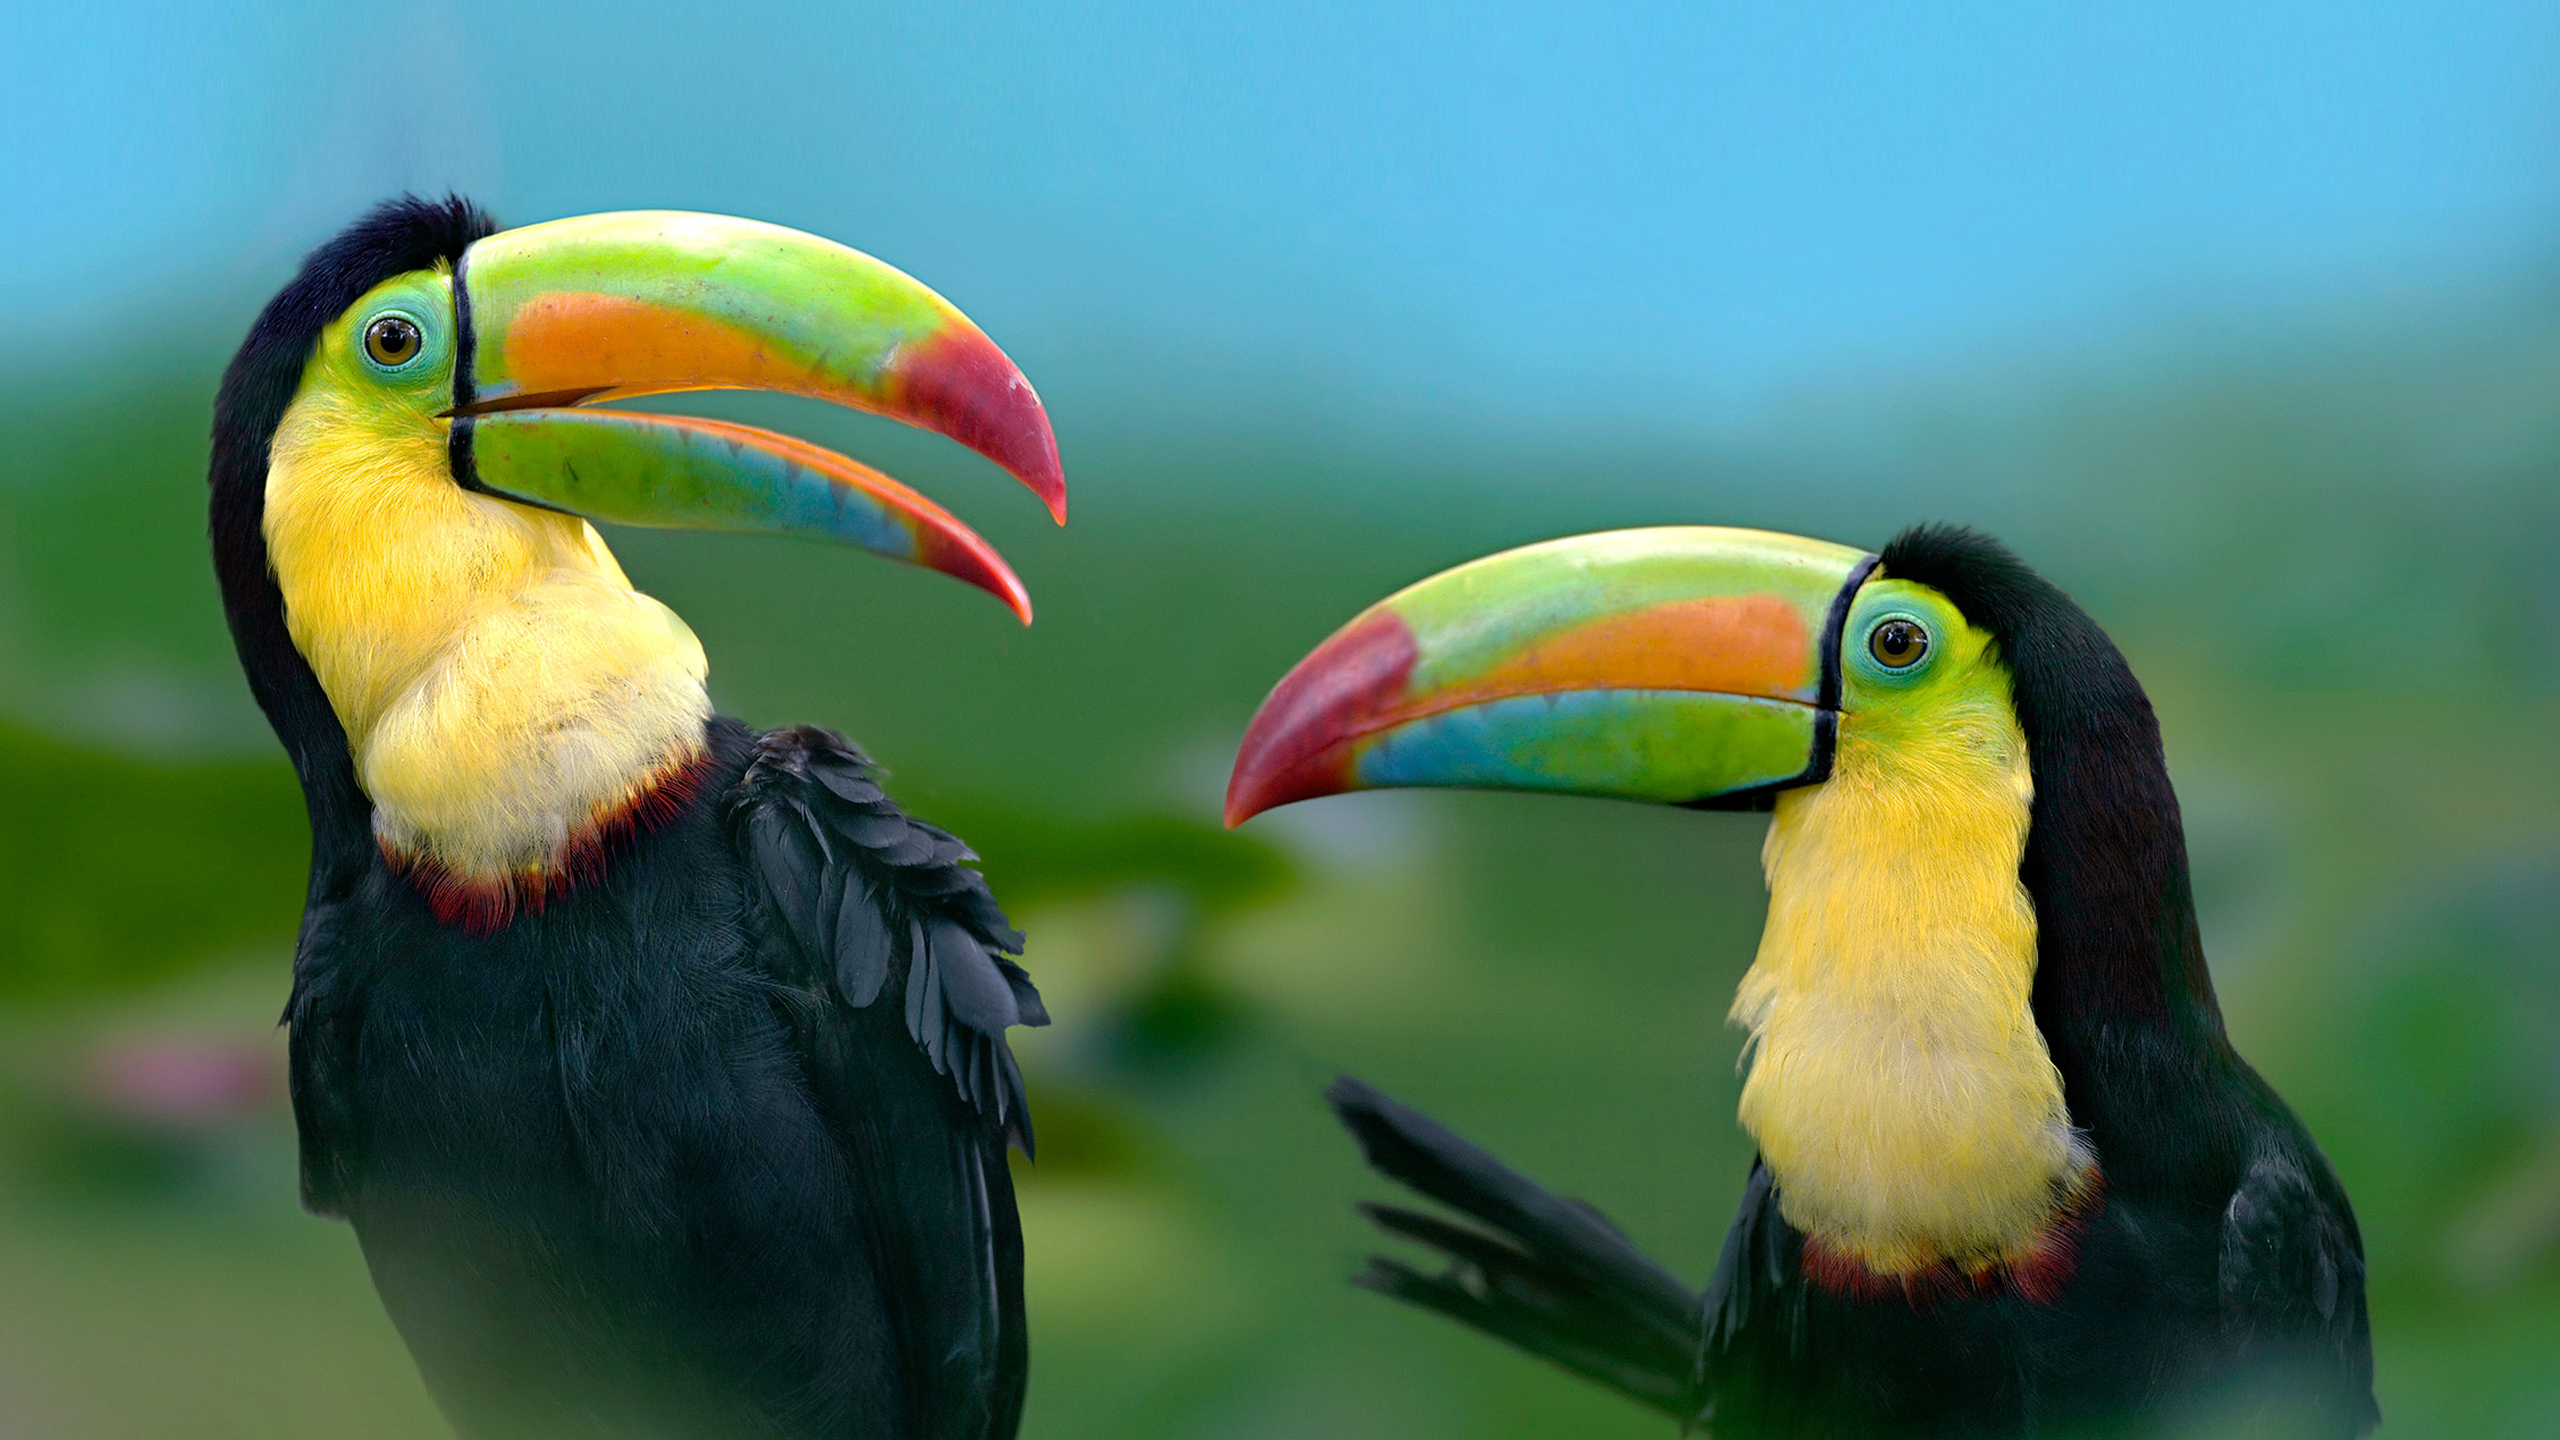 wallpaper with toucan